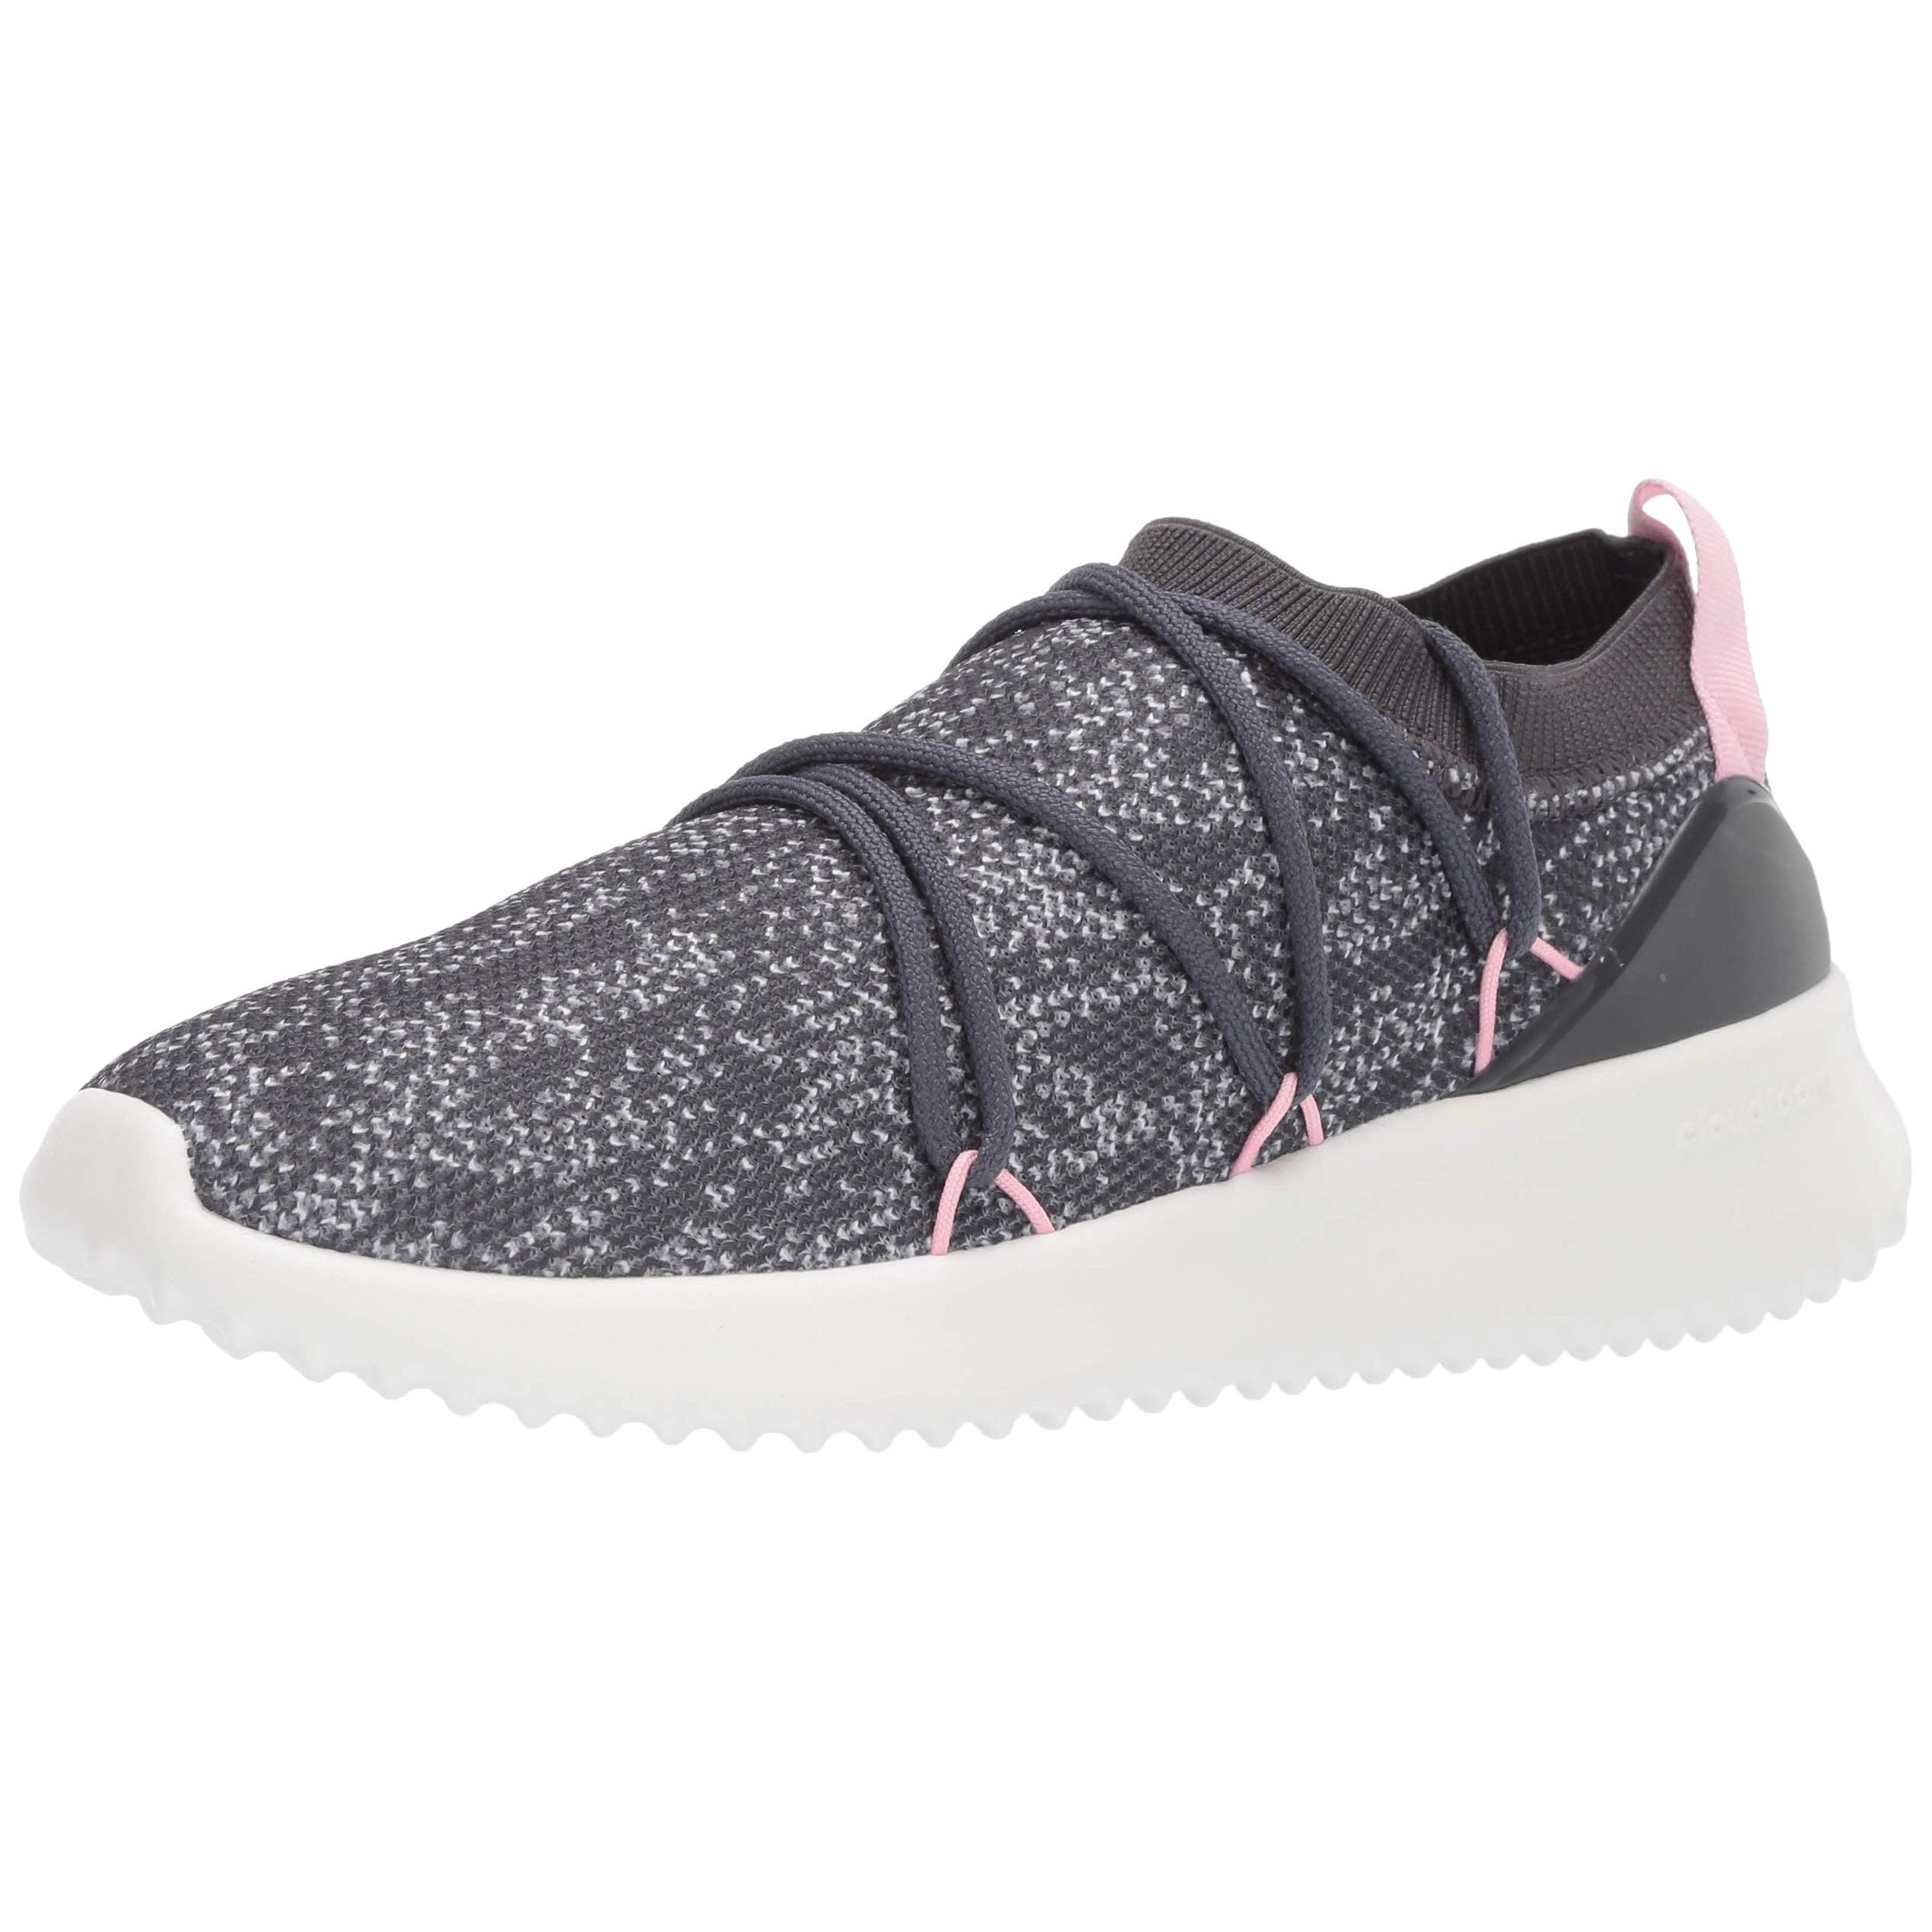 new product 14881 0527e Shop Adidas Women s Ultimafusion, Grey Cloud White True Pink - Free  Shipping Today - Overstock - 27124971